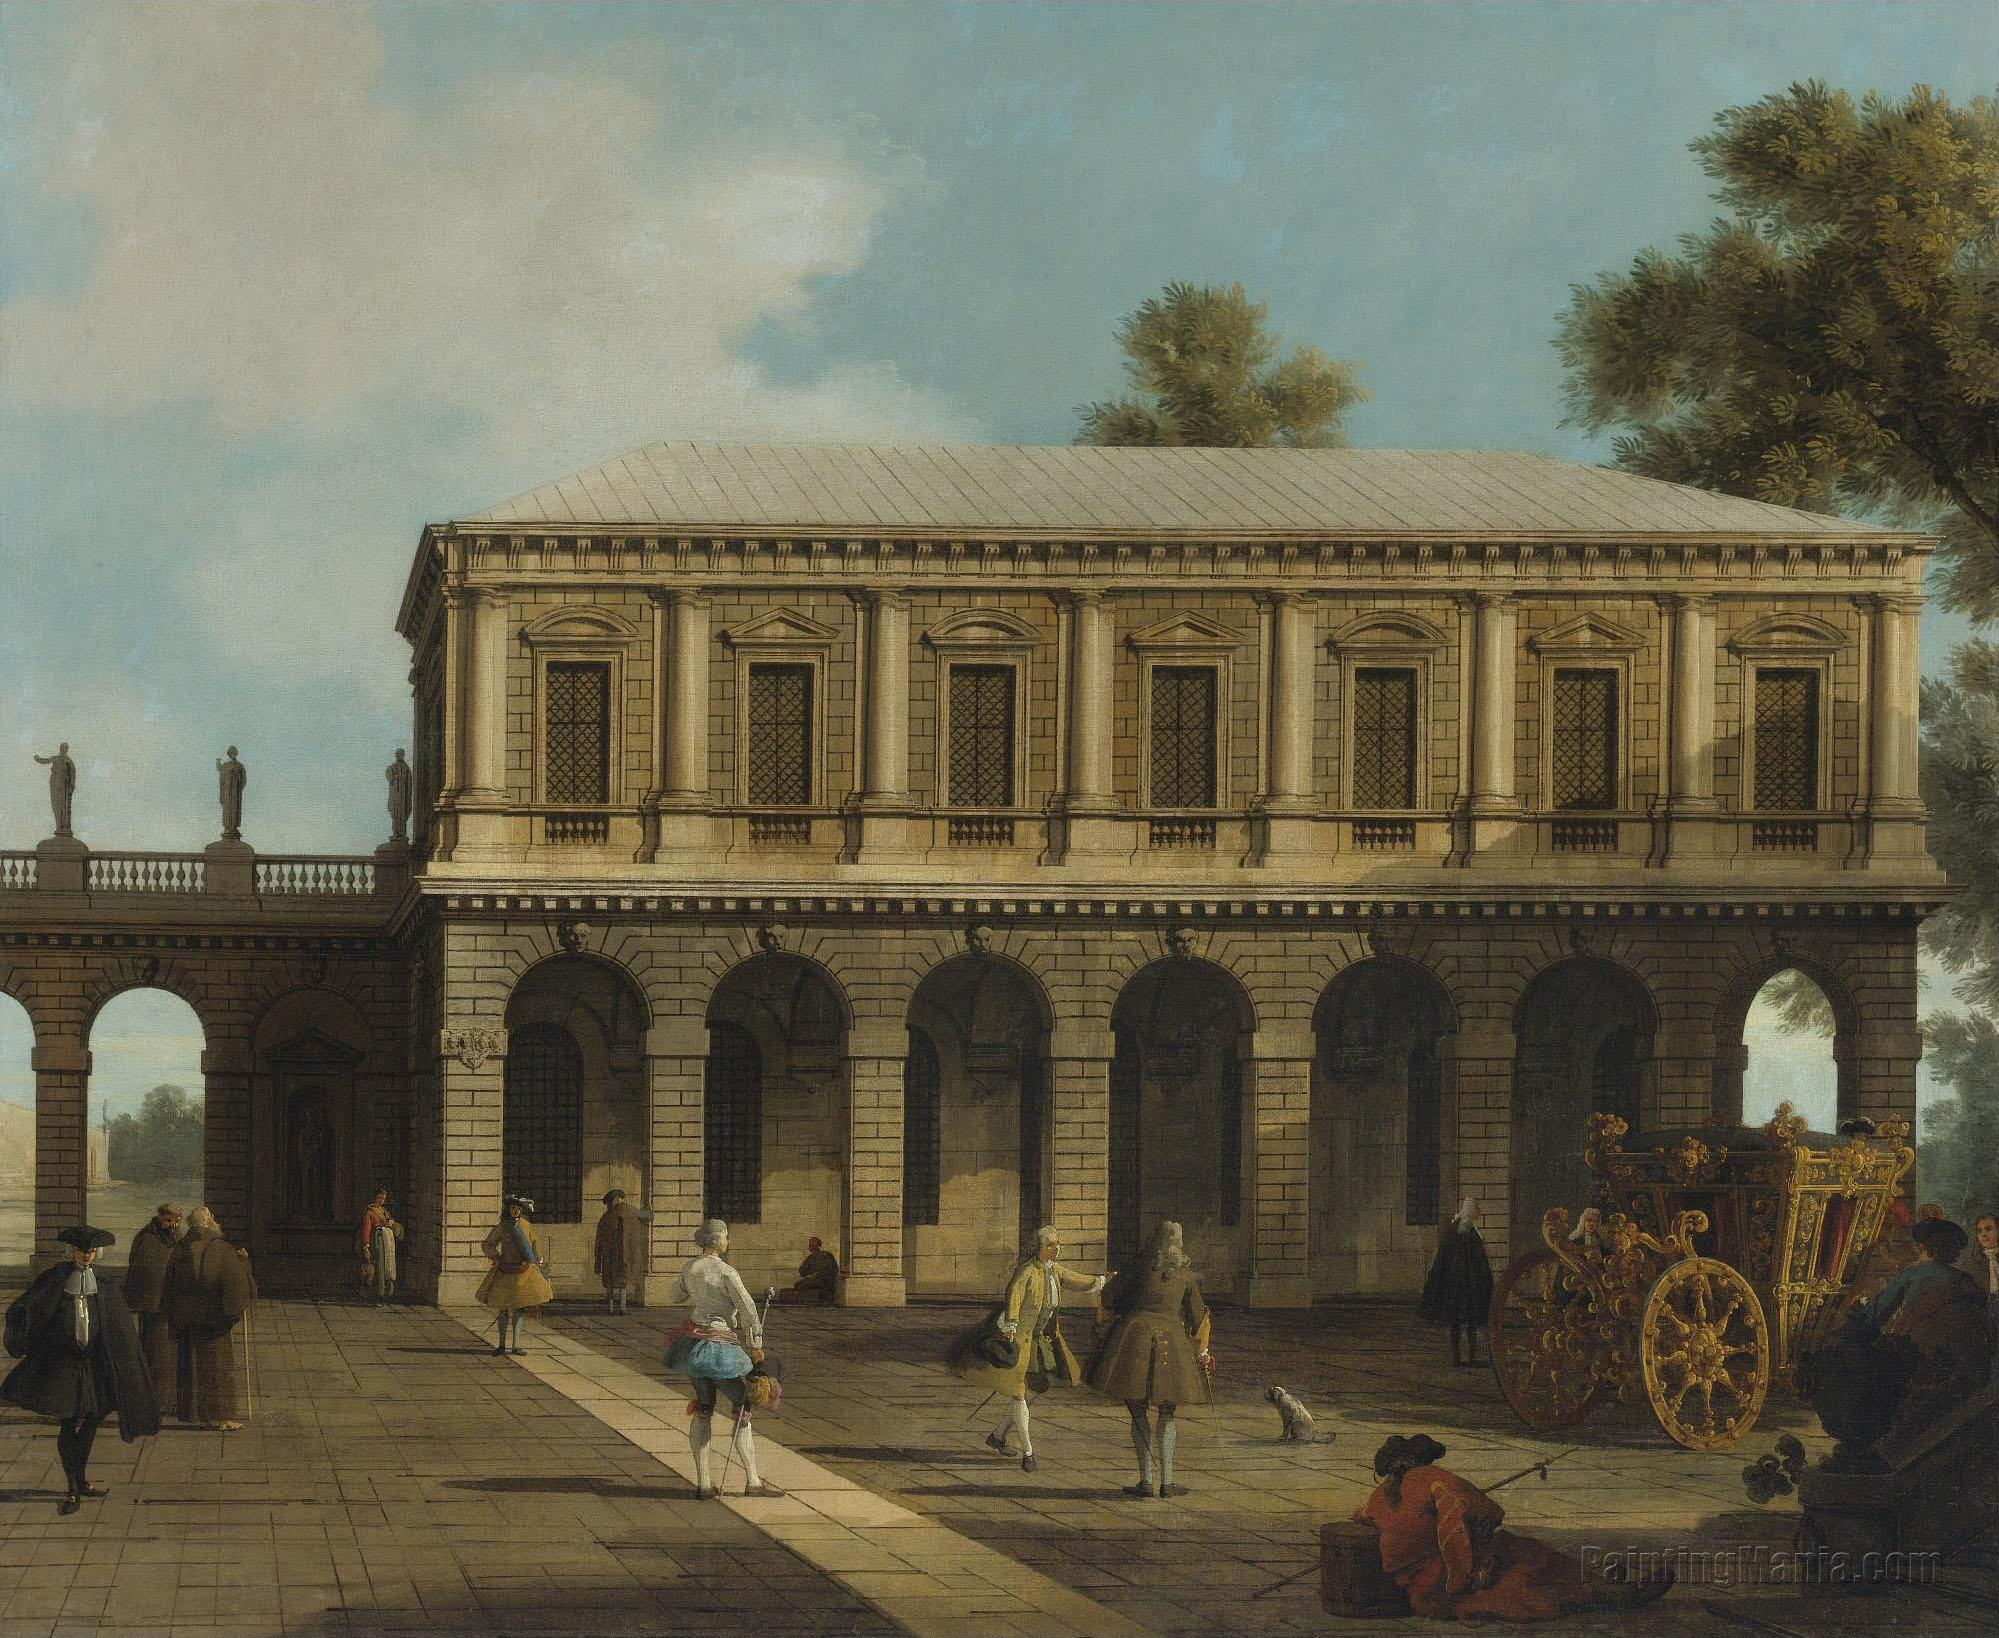 A Capriccio of the Prisons of San Marco set in a Piazza with a Coach and Townsfolk